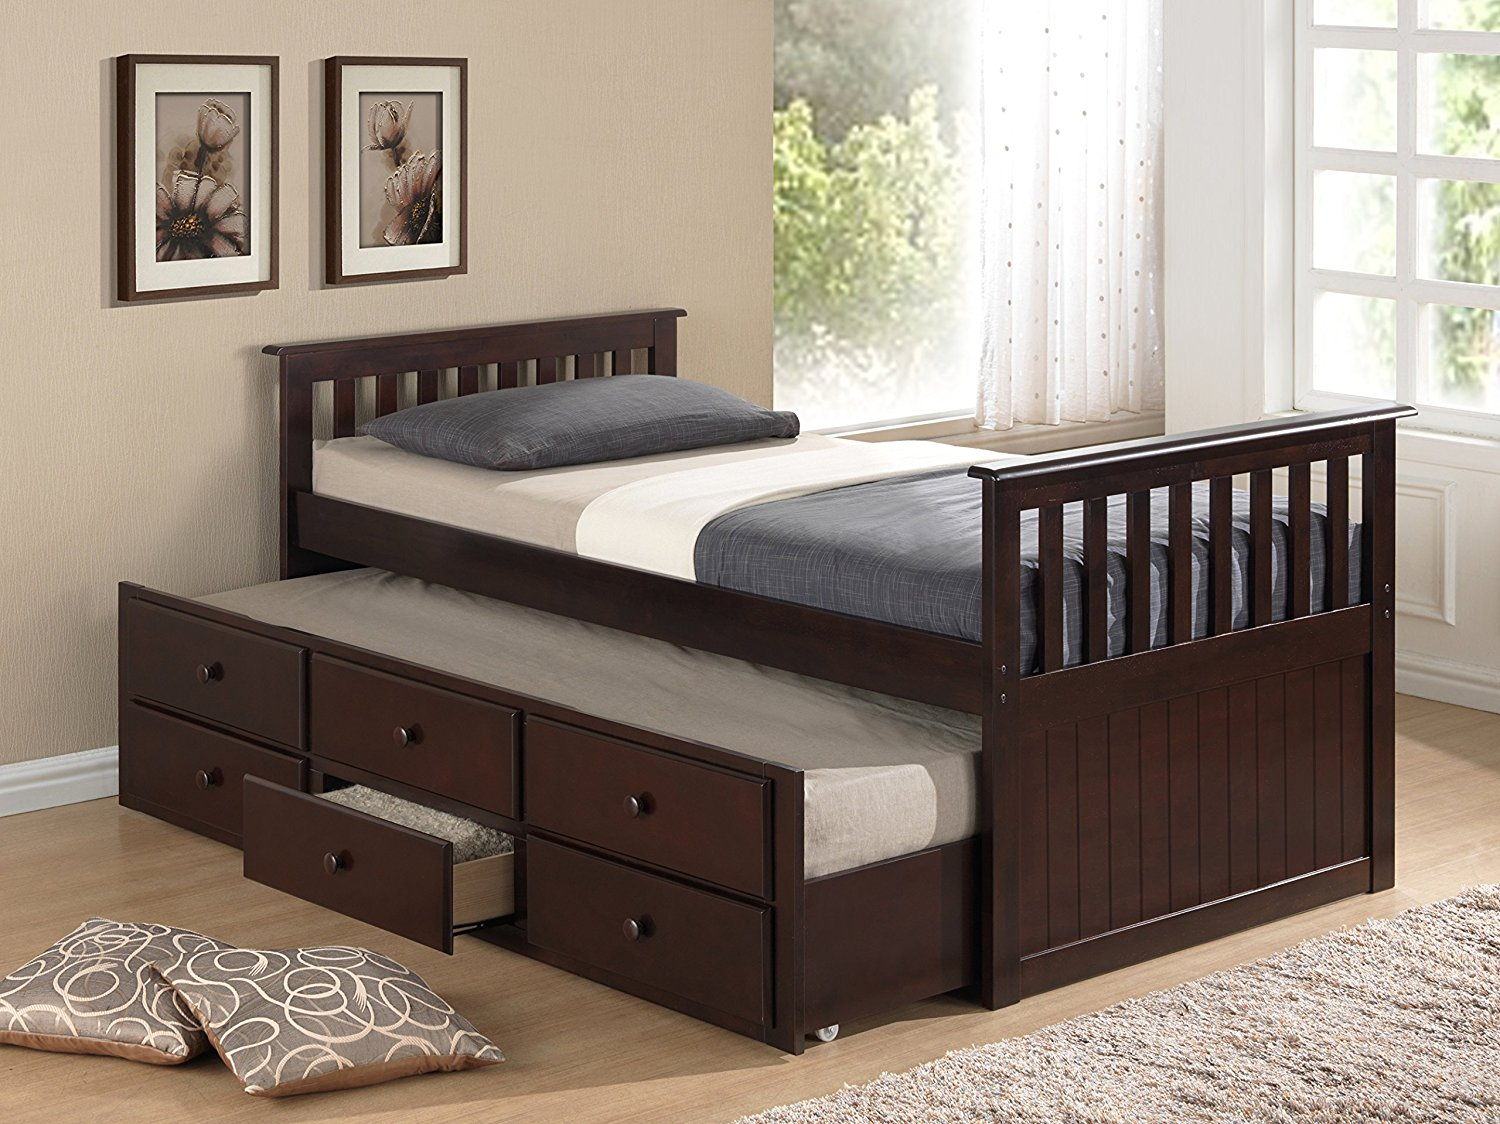 Image of: Twin Diy Storage Bed